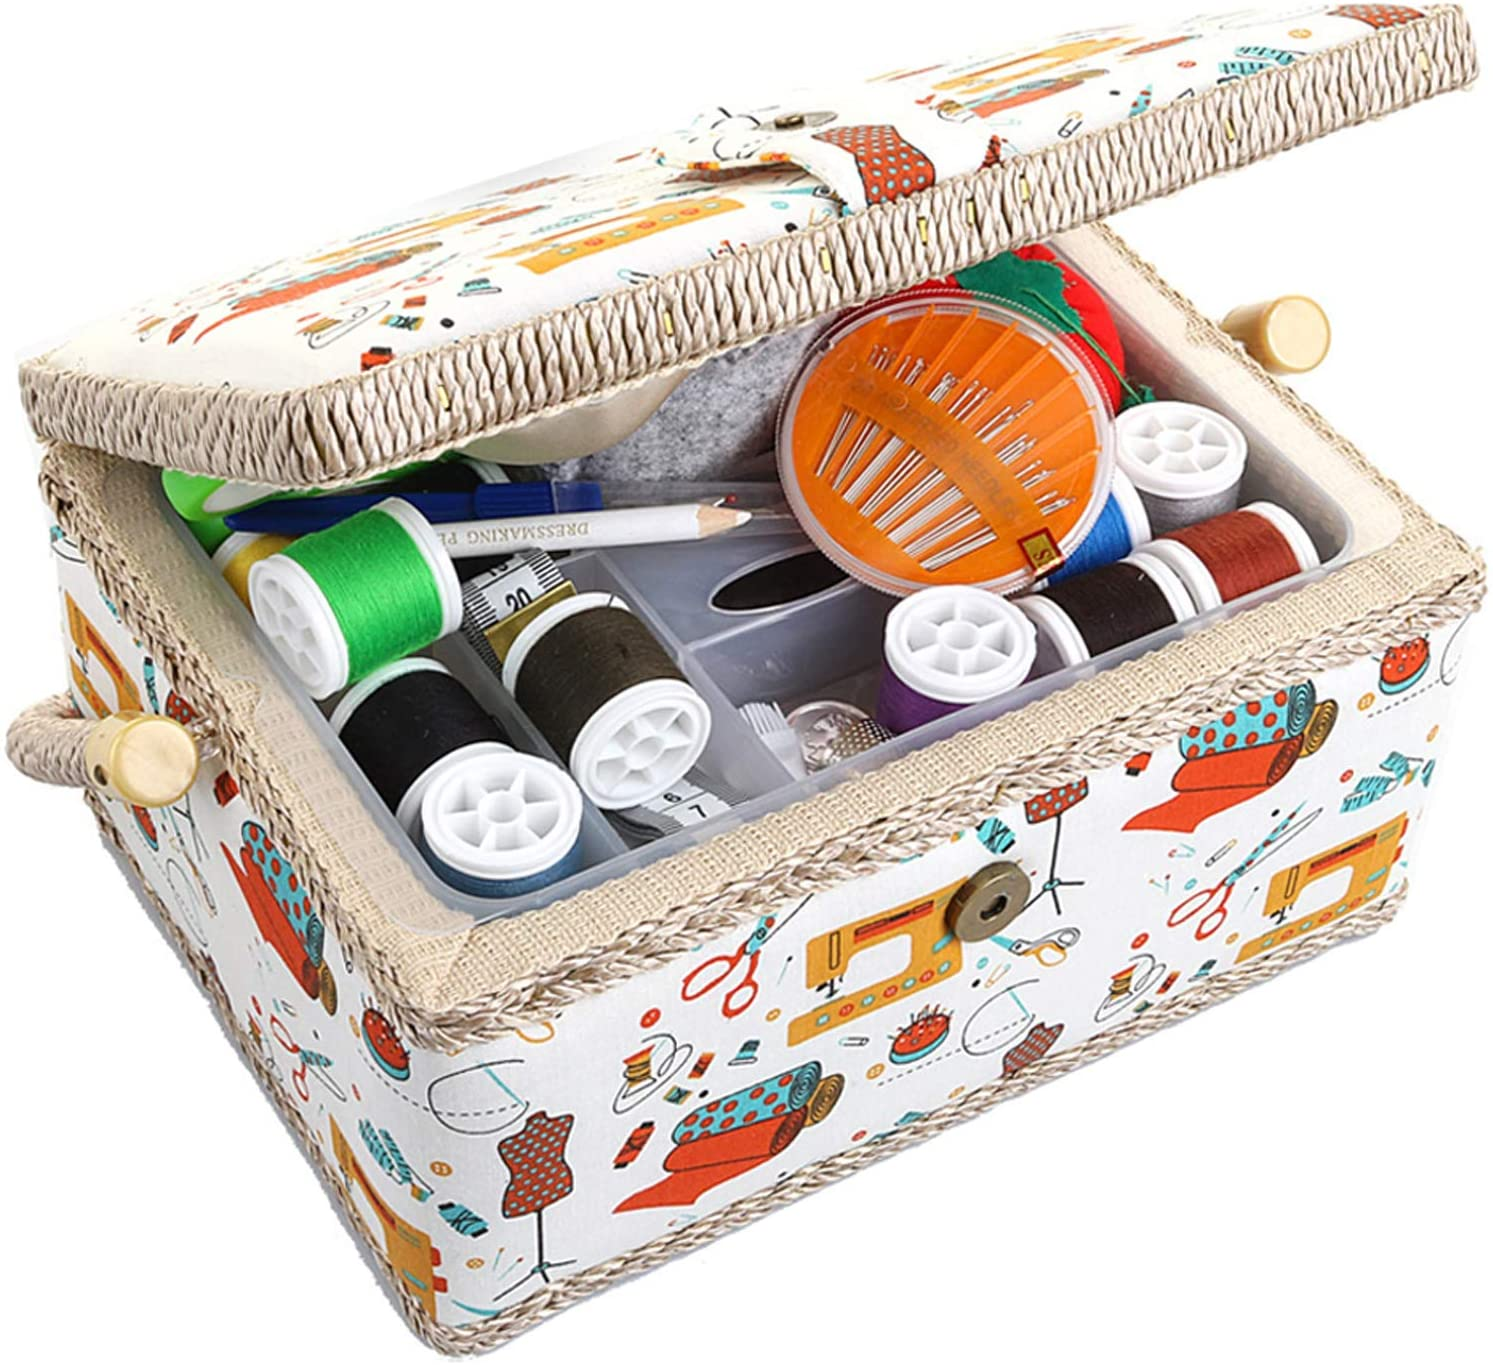 Medium Sewing Popularity Basket Storage Organizer Gorgeous with and Complete